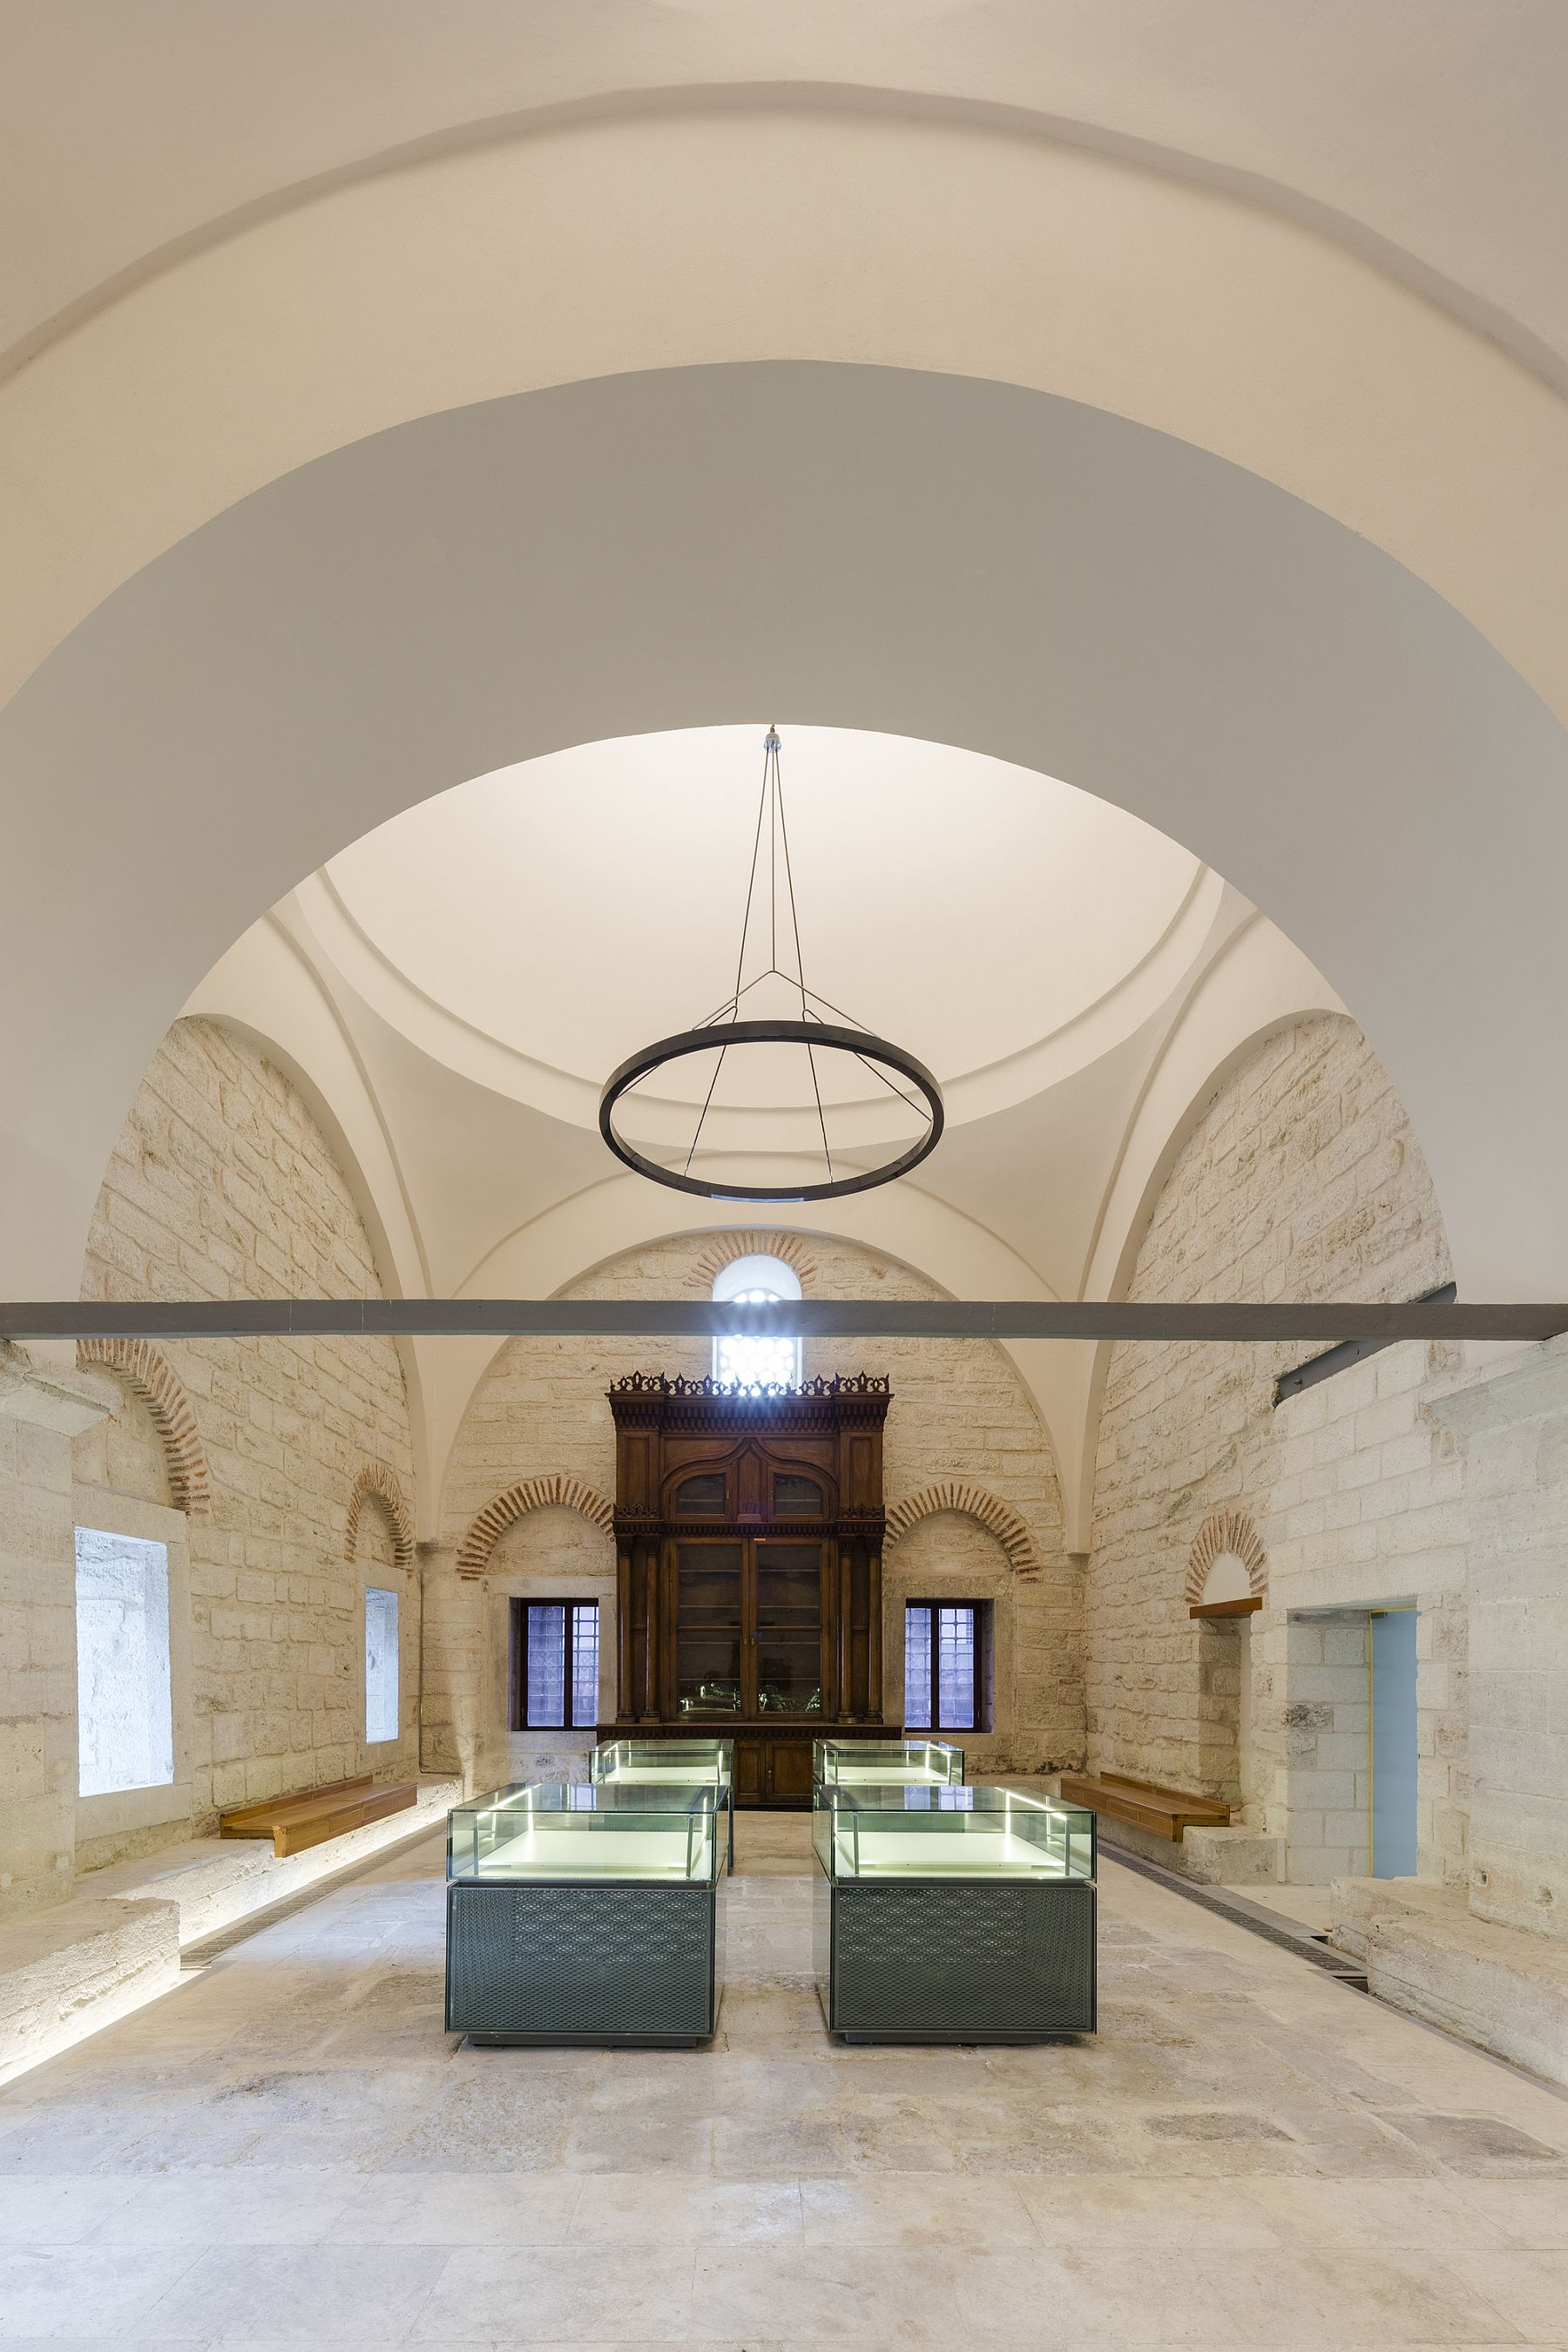 Original grandeur of the city's oldest library is kept firmly intact despite the modern glass boxes